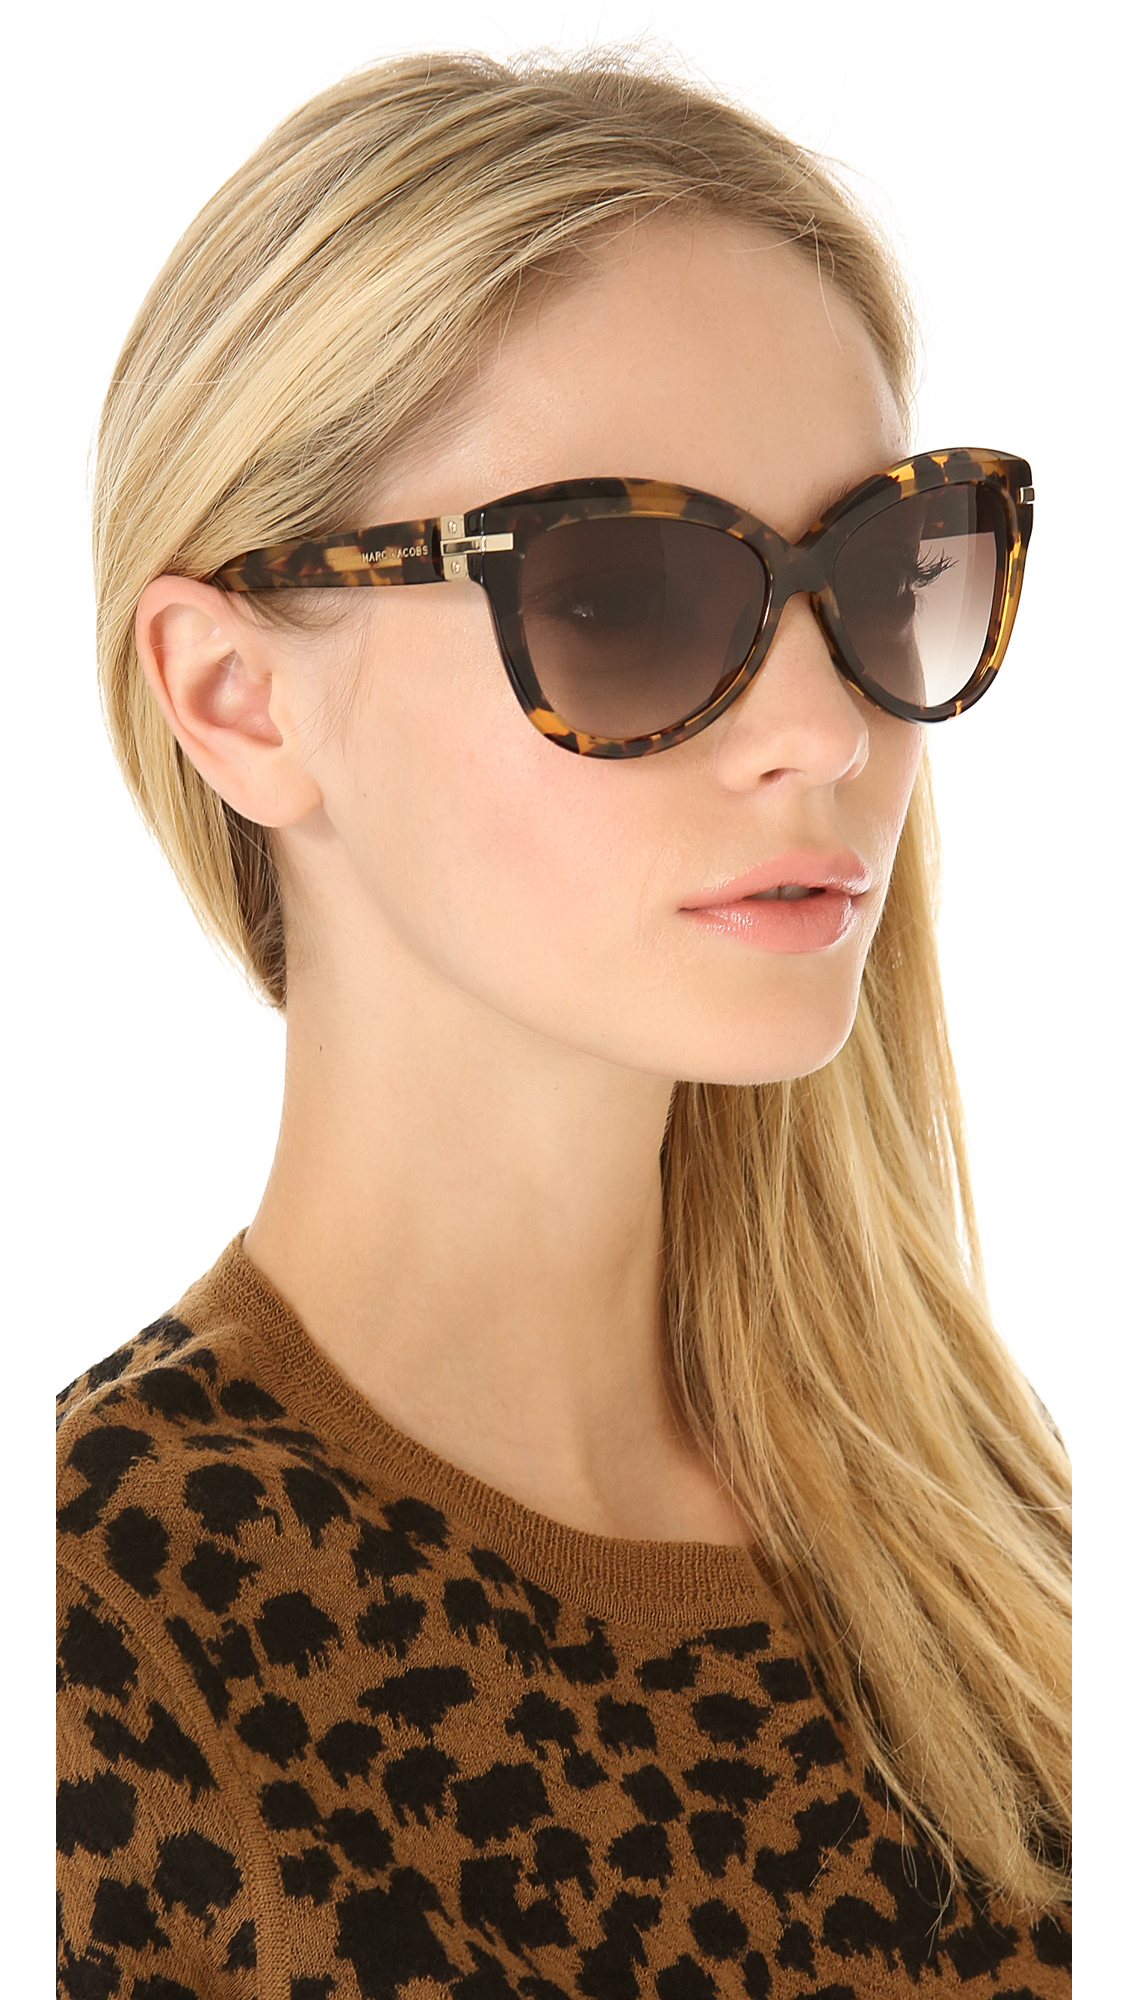 aef2318491bb Marc Jacobs Sunglasses Exaggerated Cat Eye Sunglasses | SHOPBOP